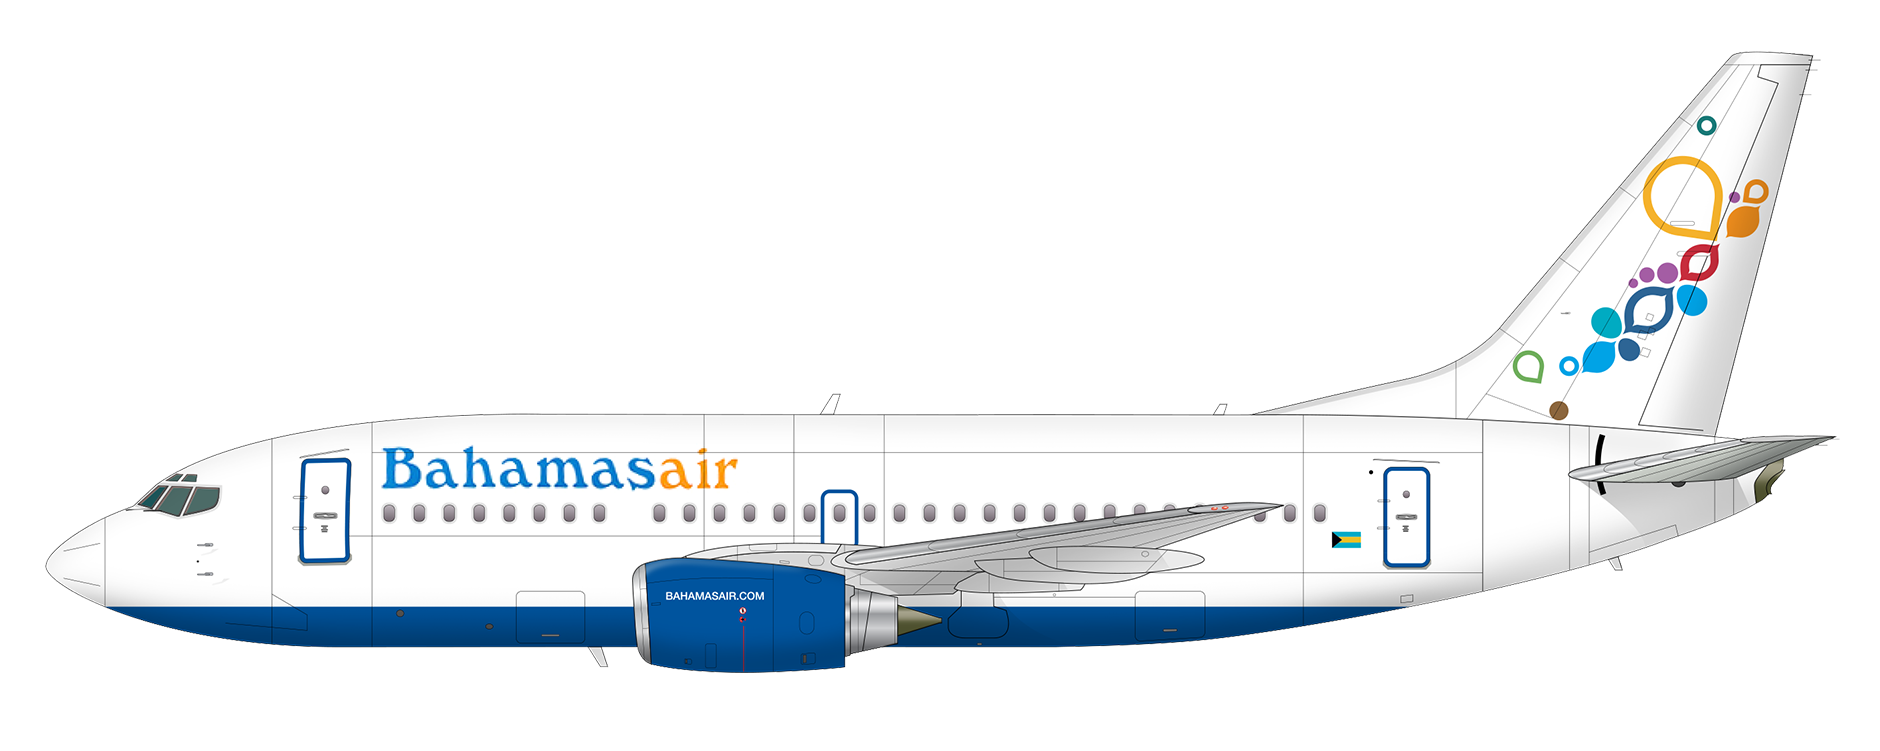 Image result for bahamasair Boeing 737-500 png